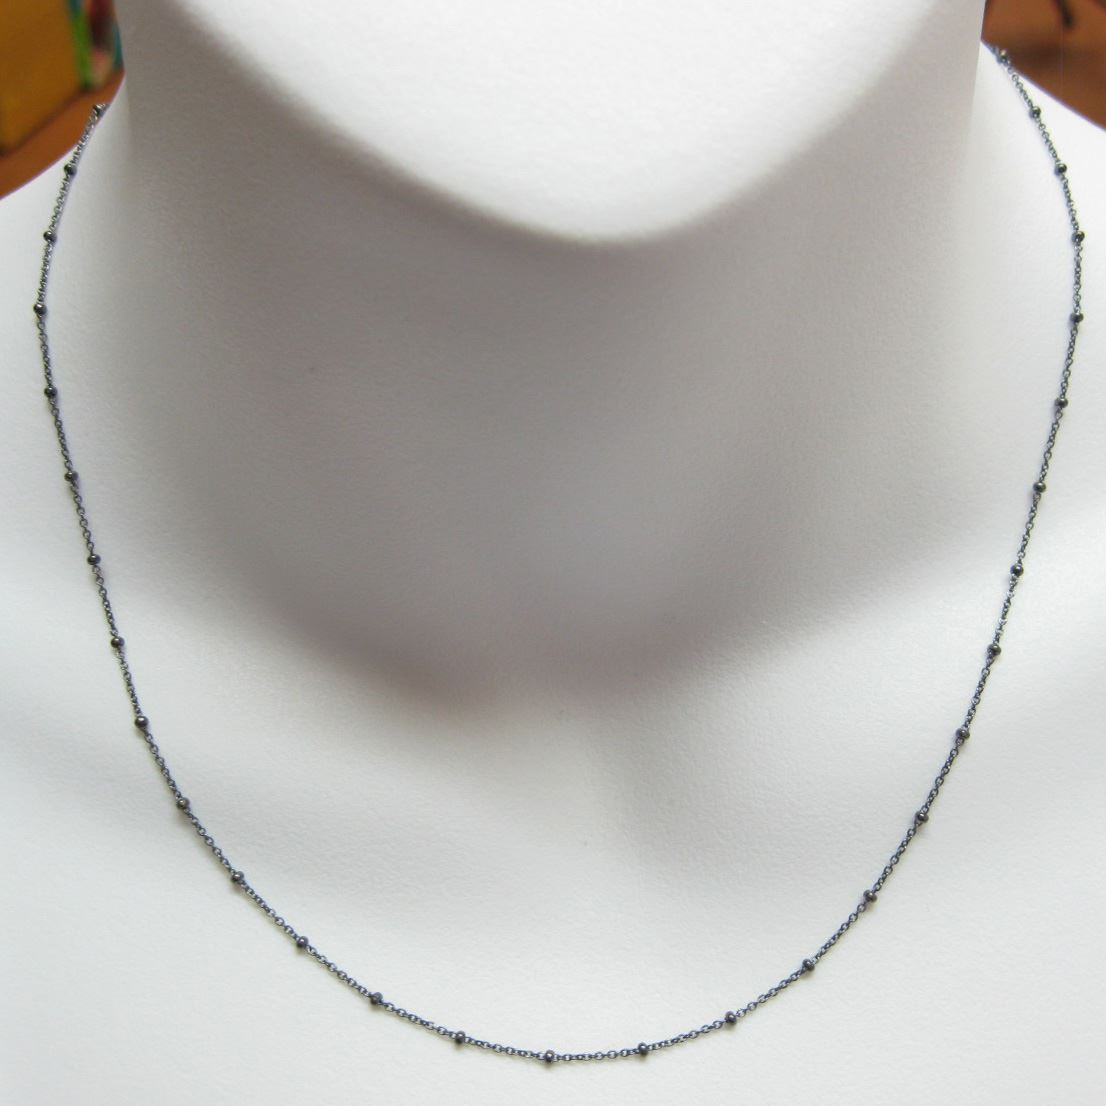 Oxidized Silver Necklace, Oxidized Sterling Silver Chain Necklace - Bracelet Chain, Anklet Chain - Cable  Beaded Chain - Satellite Necklace Chain- Long Necklace - All Sizes